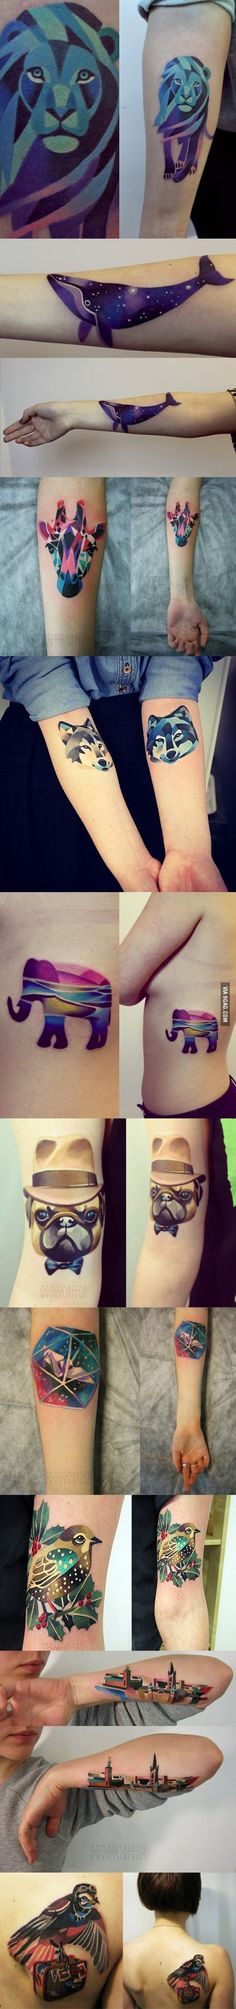 animal tatts